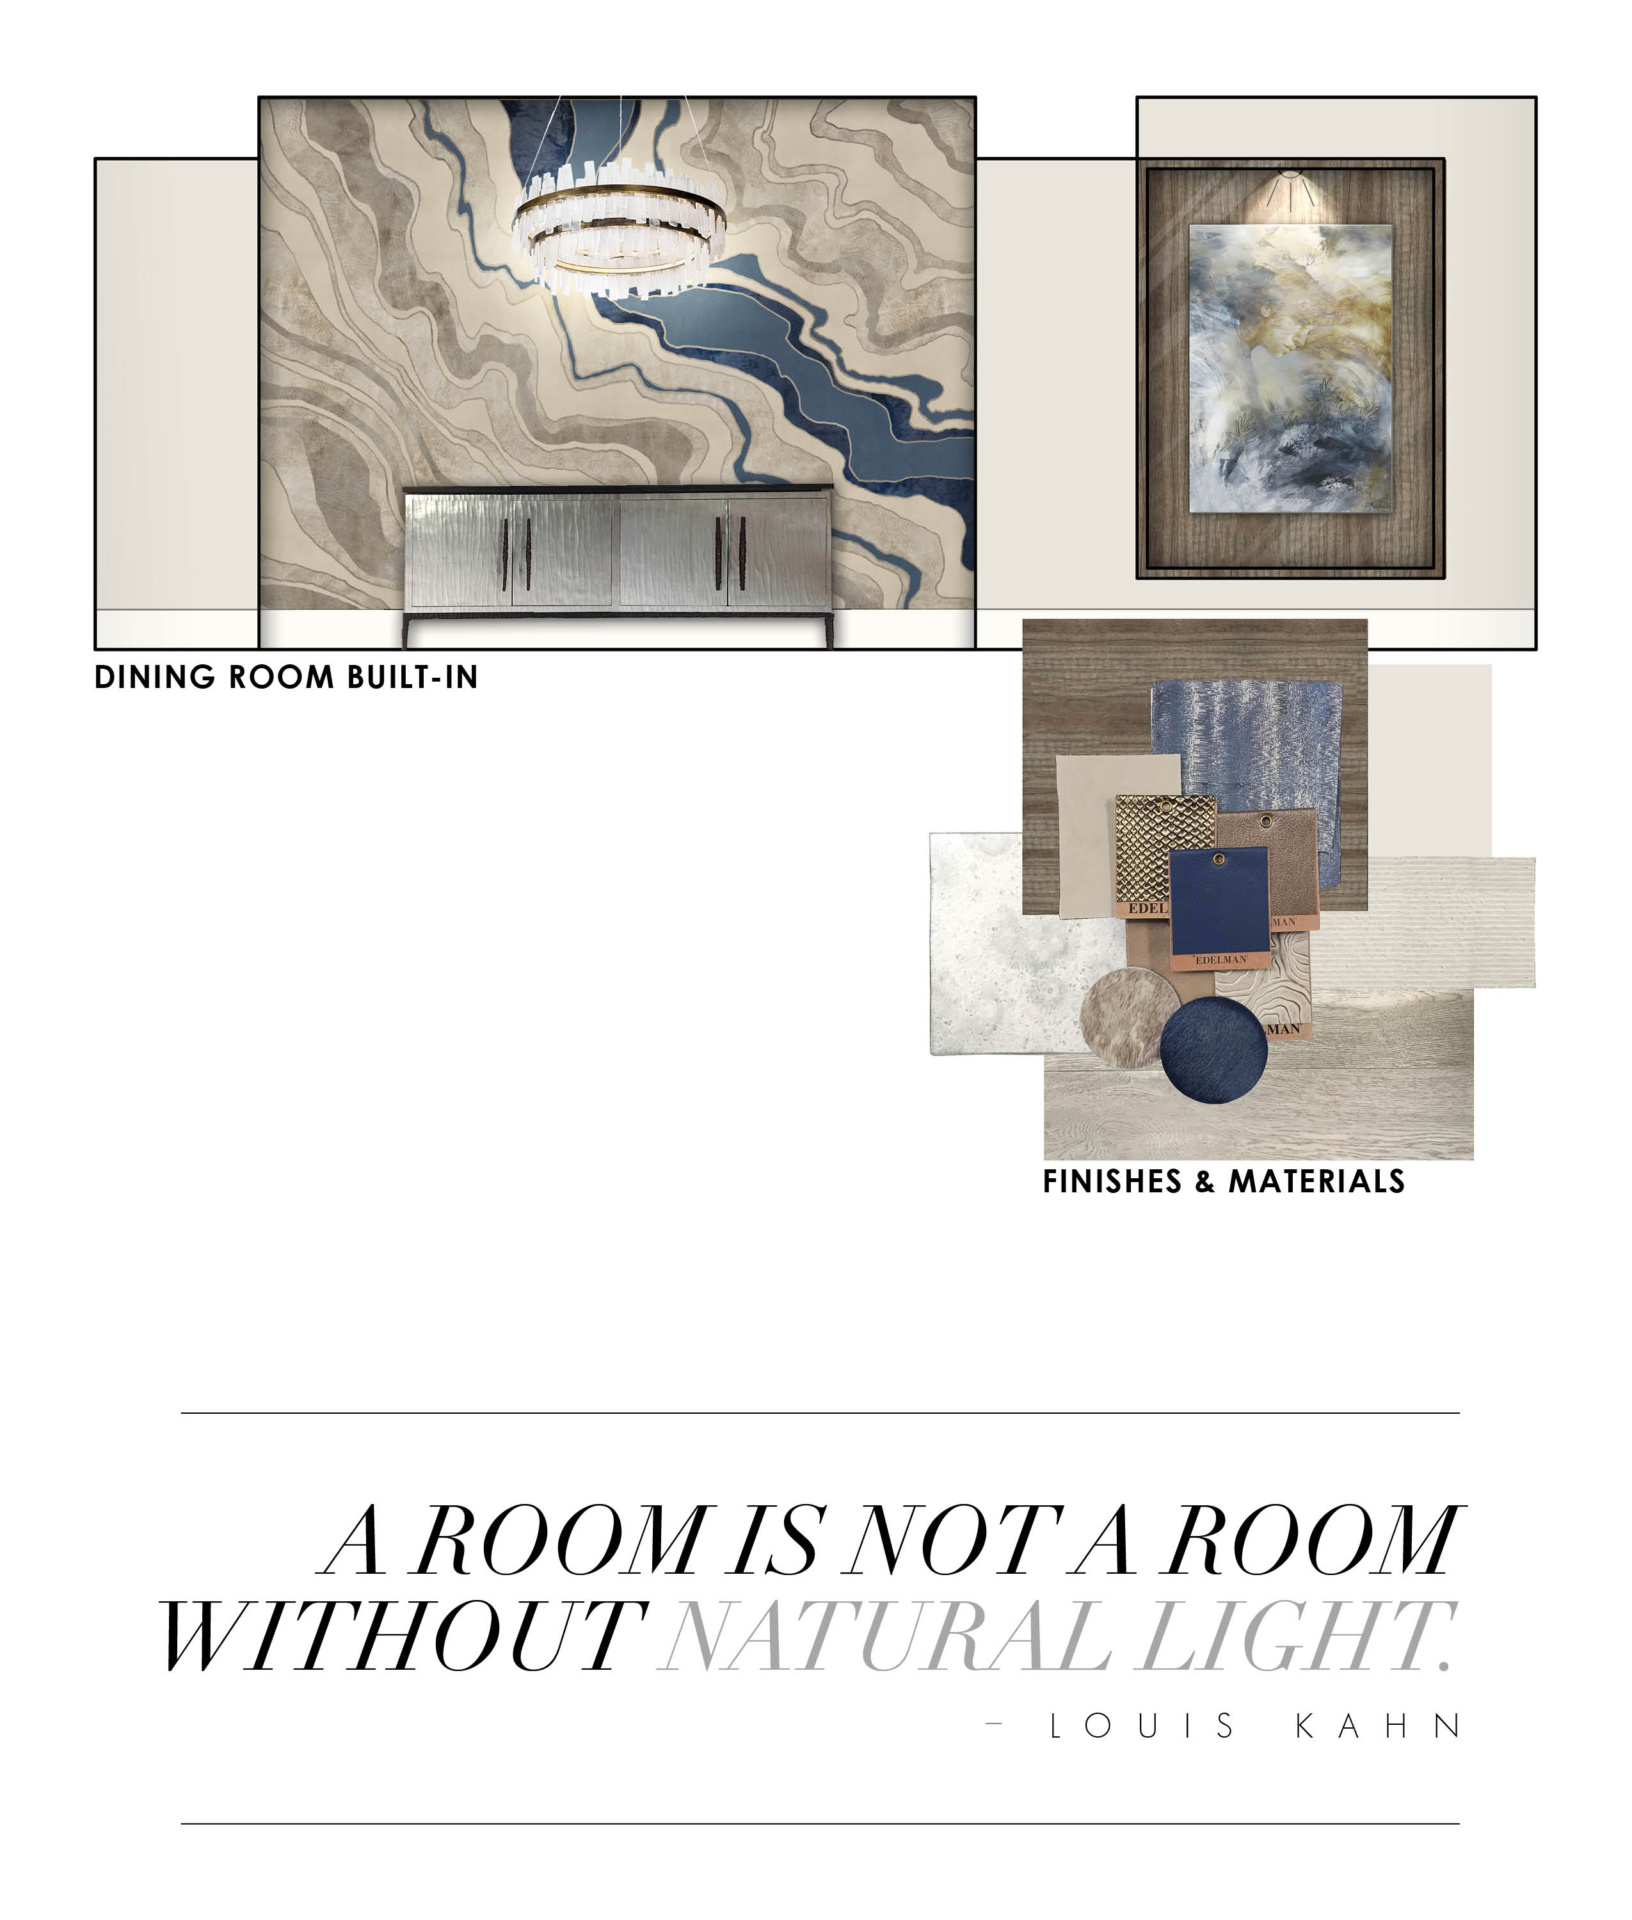 Mystique a room is not a room